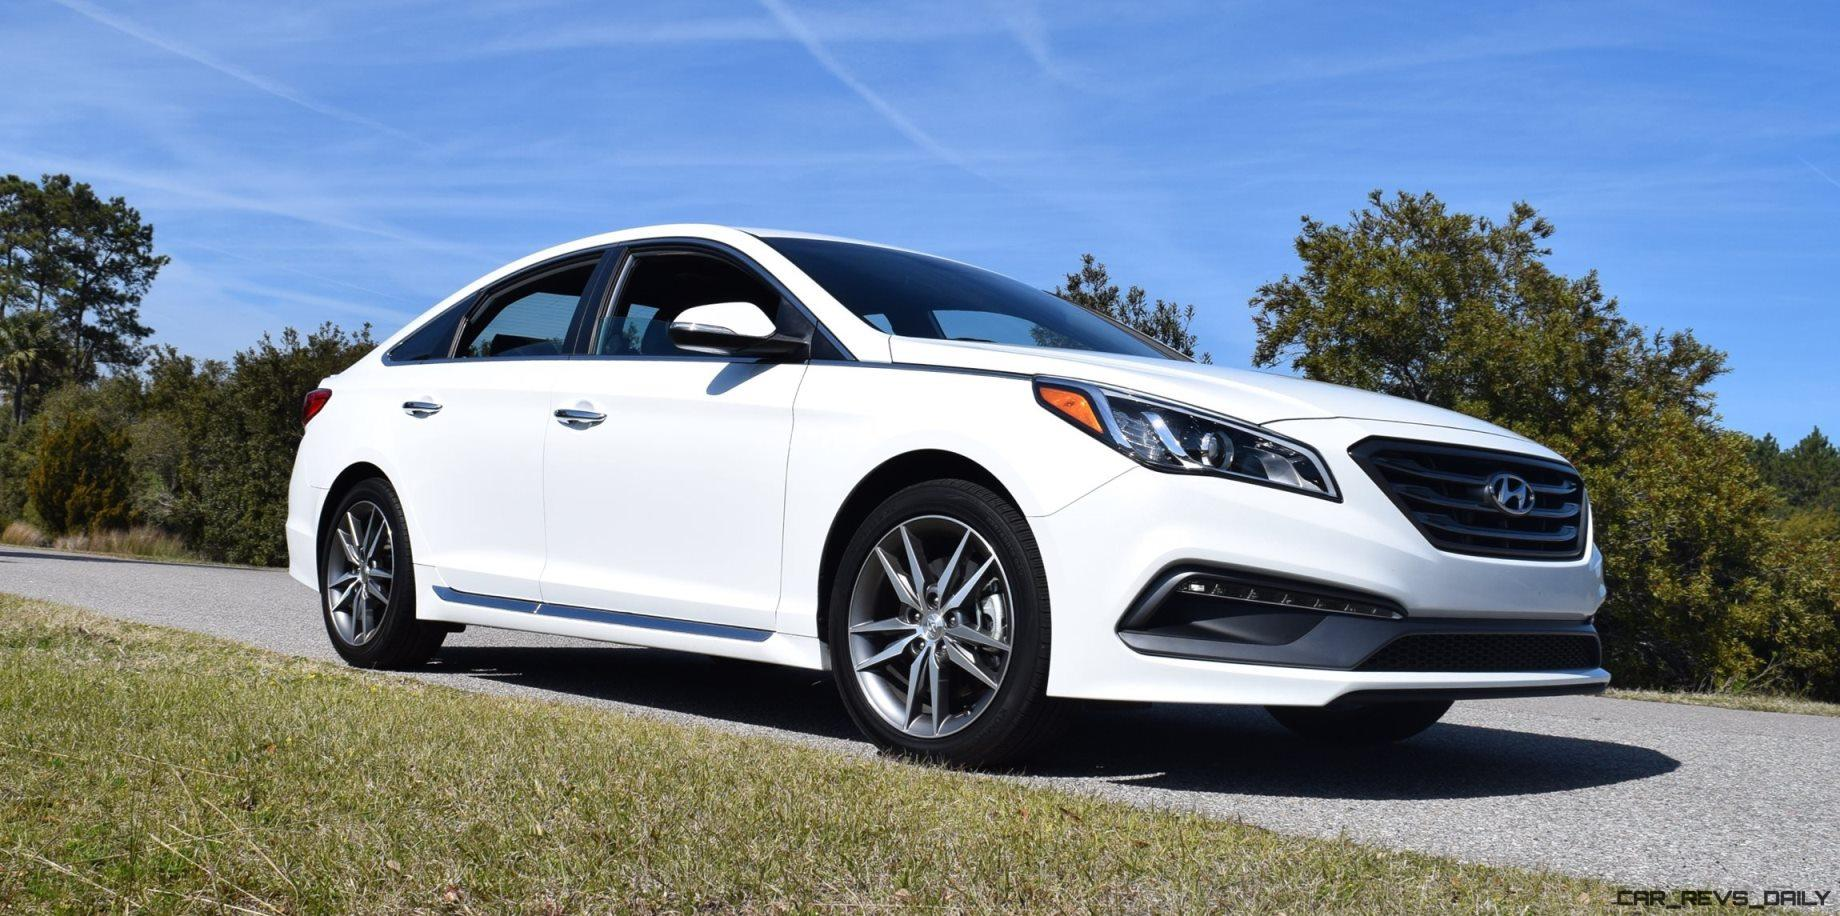 2013 Hyundai Sonata – Car Review